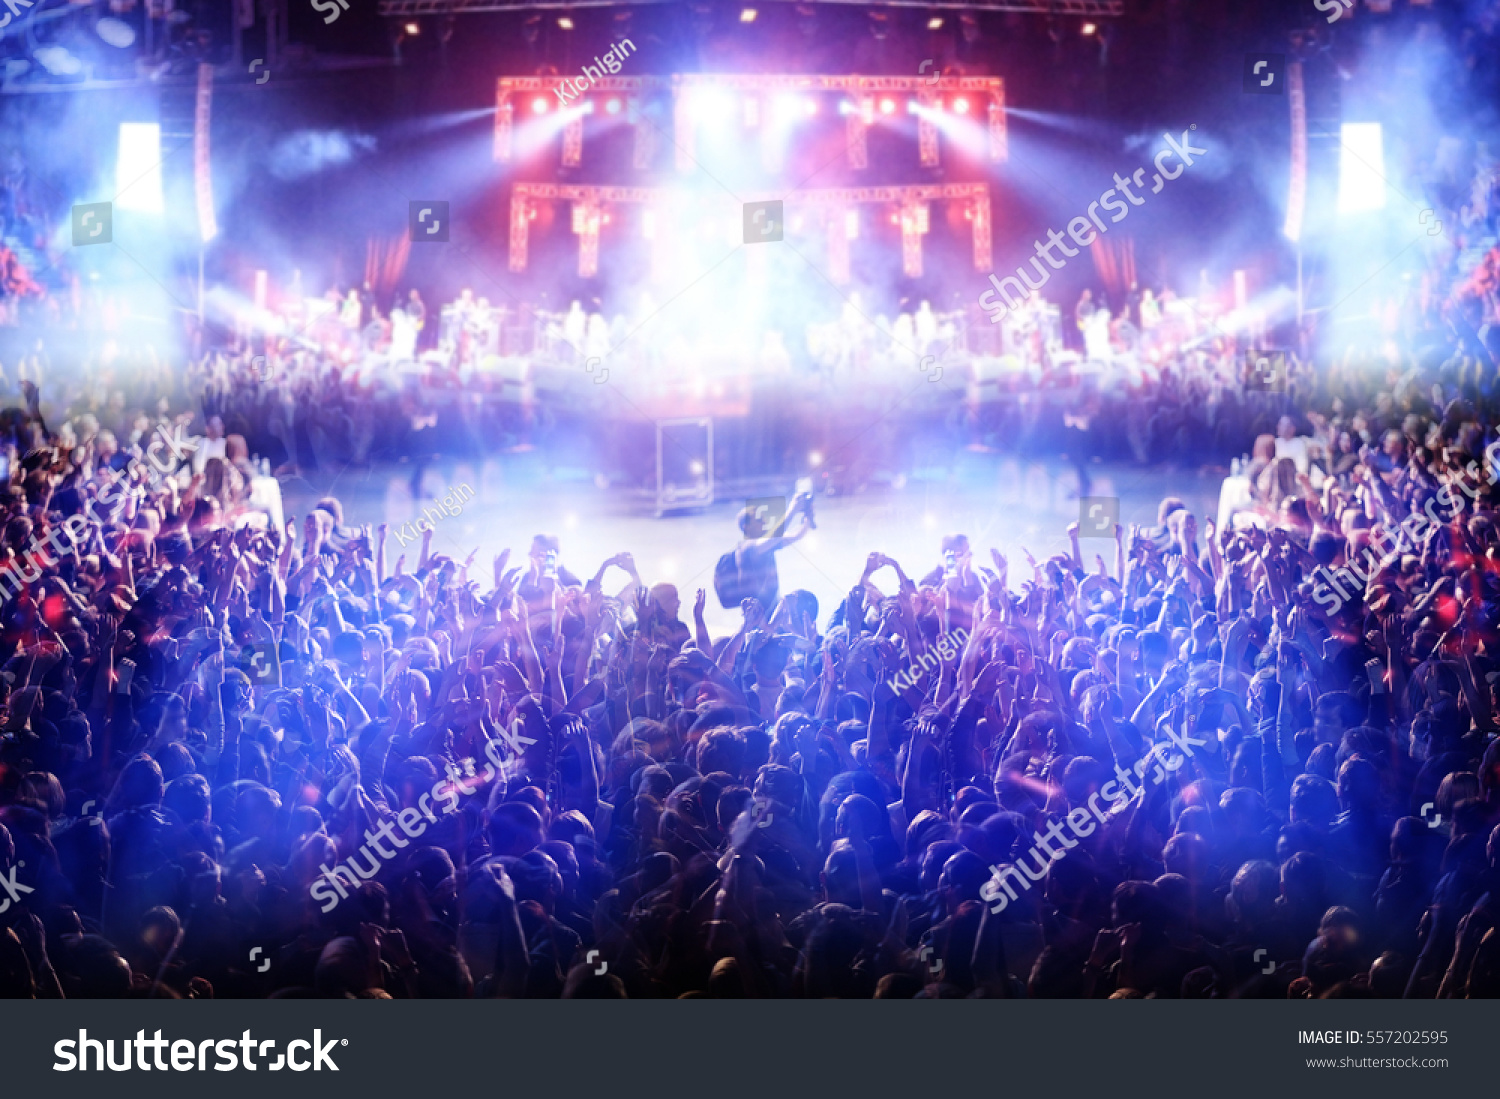 Pics photos rock concert background - Crowd At A Rock Concert Spotlight Background Blur